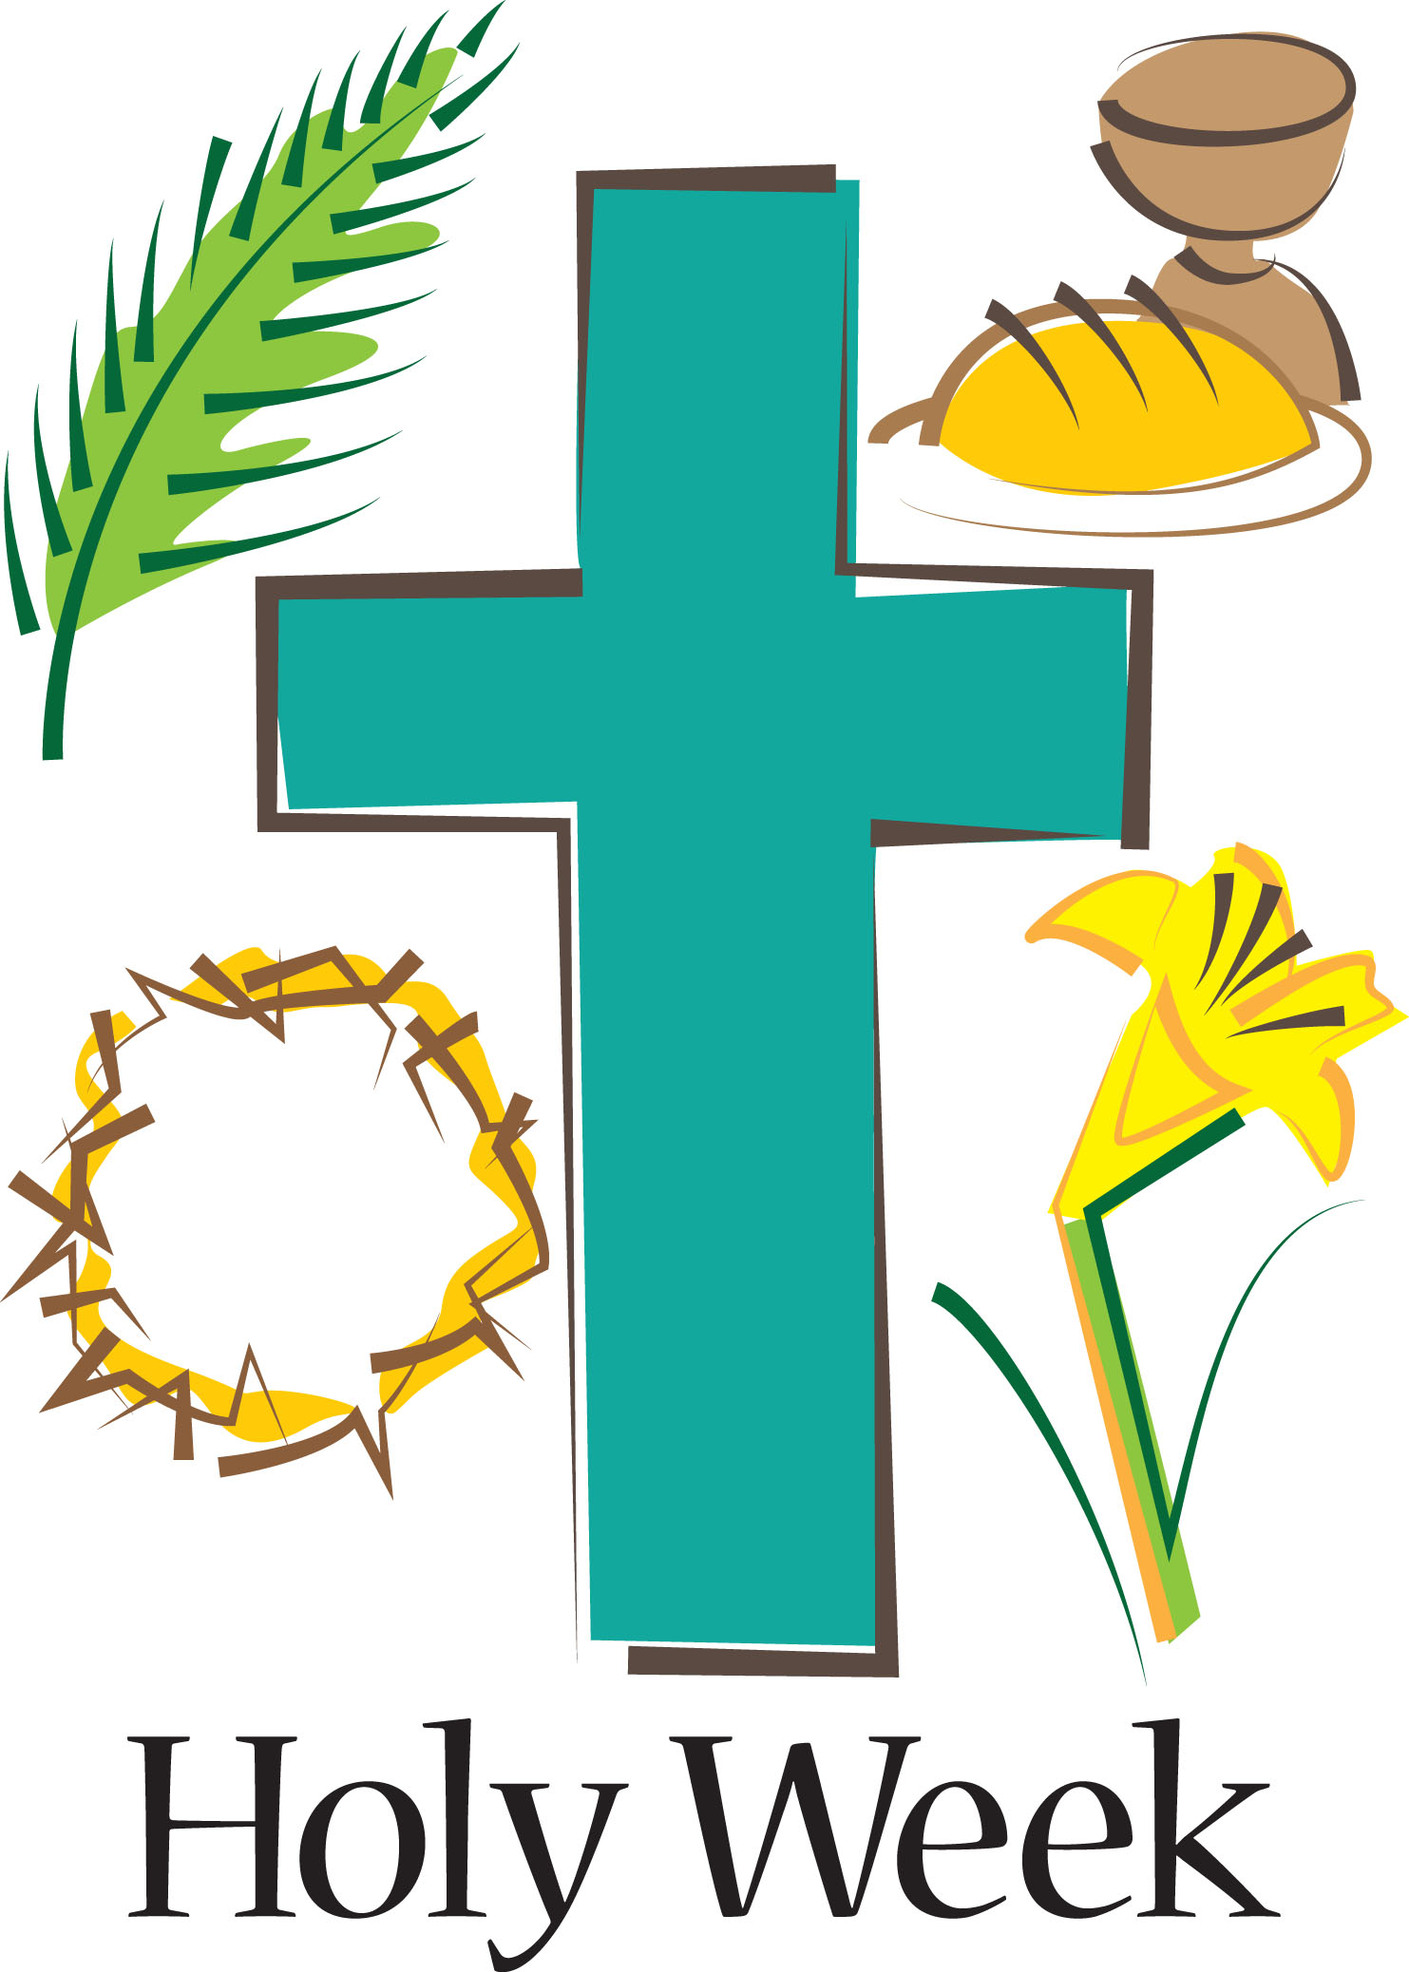 Free To Use Pictures For Holy Week